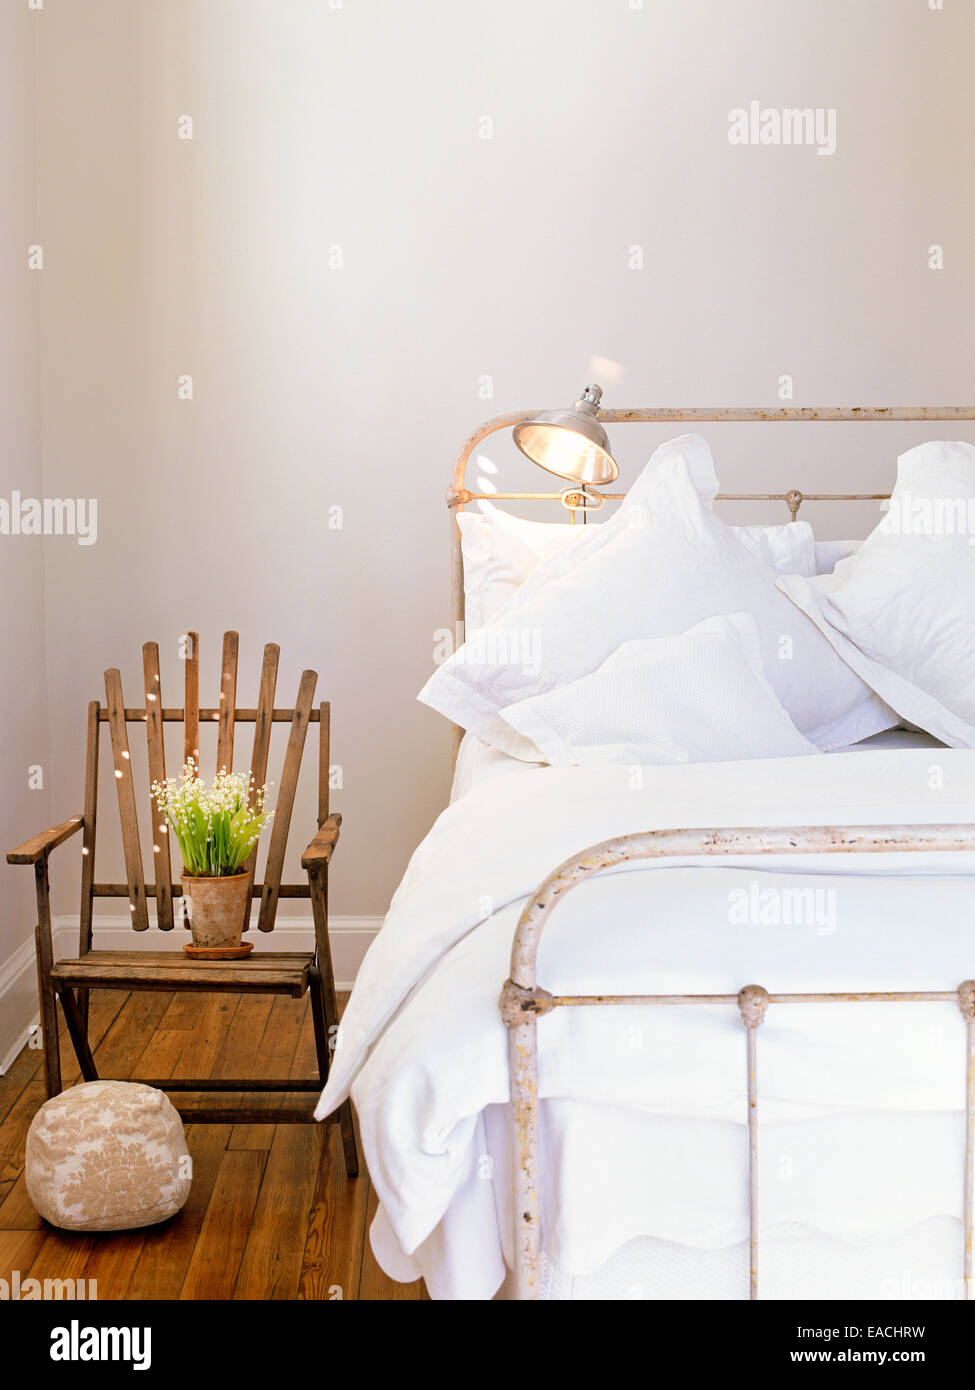 bedroom with antique bed and flowers - Stock Image